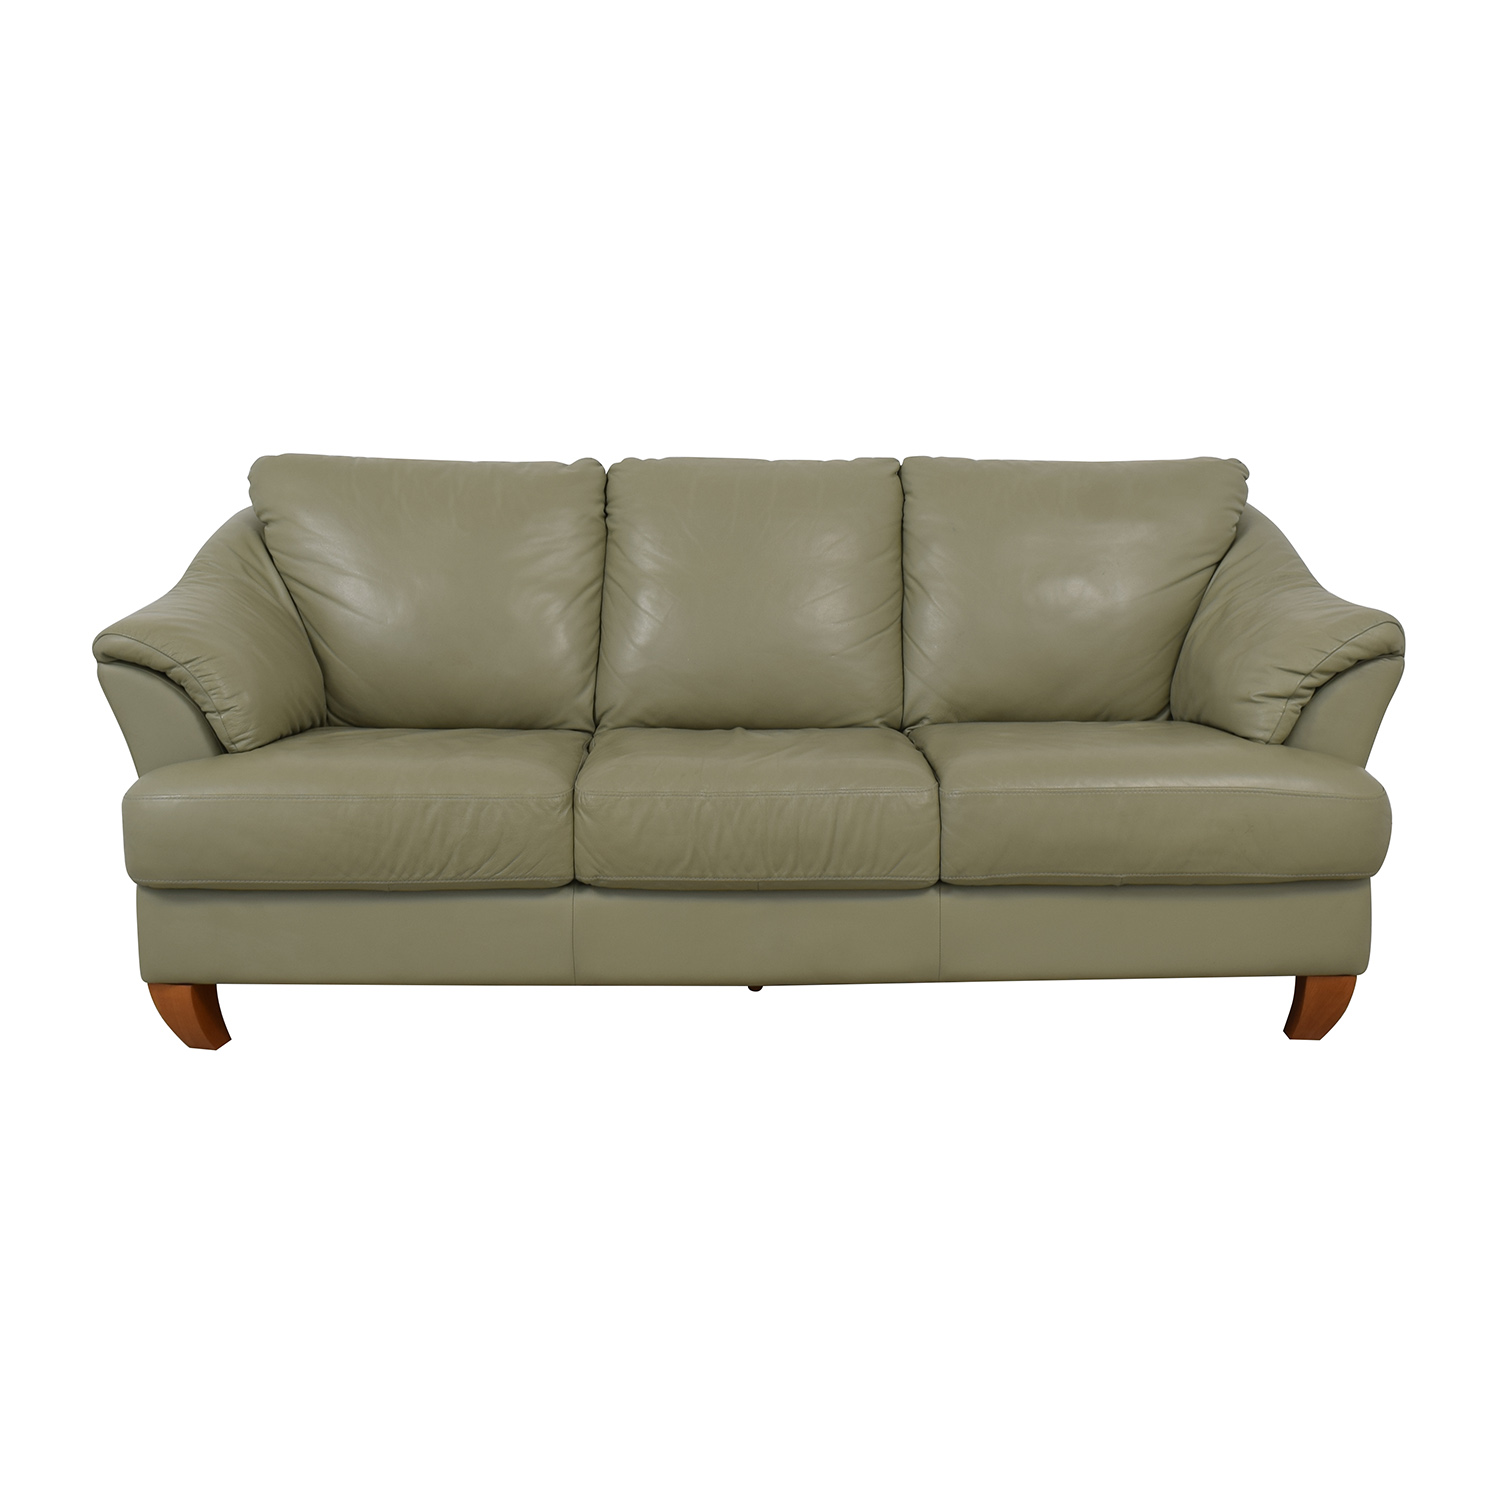 Natuzzi Natuzzi Mint Grey Three-Cushion Sofa nyc